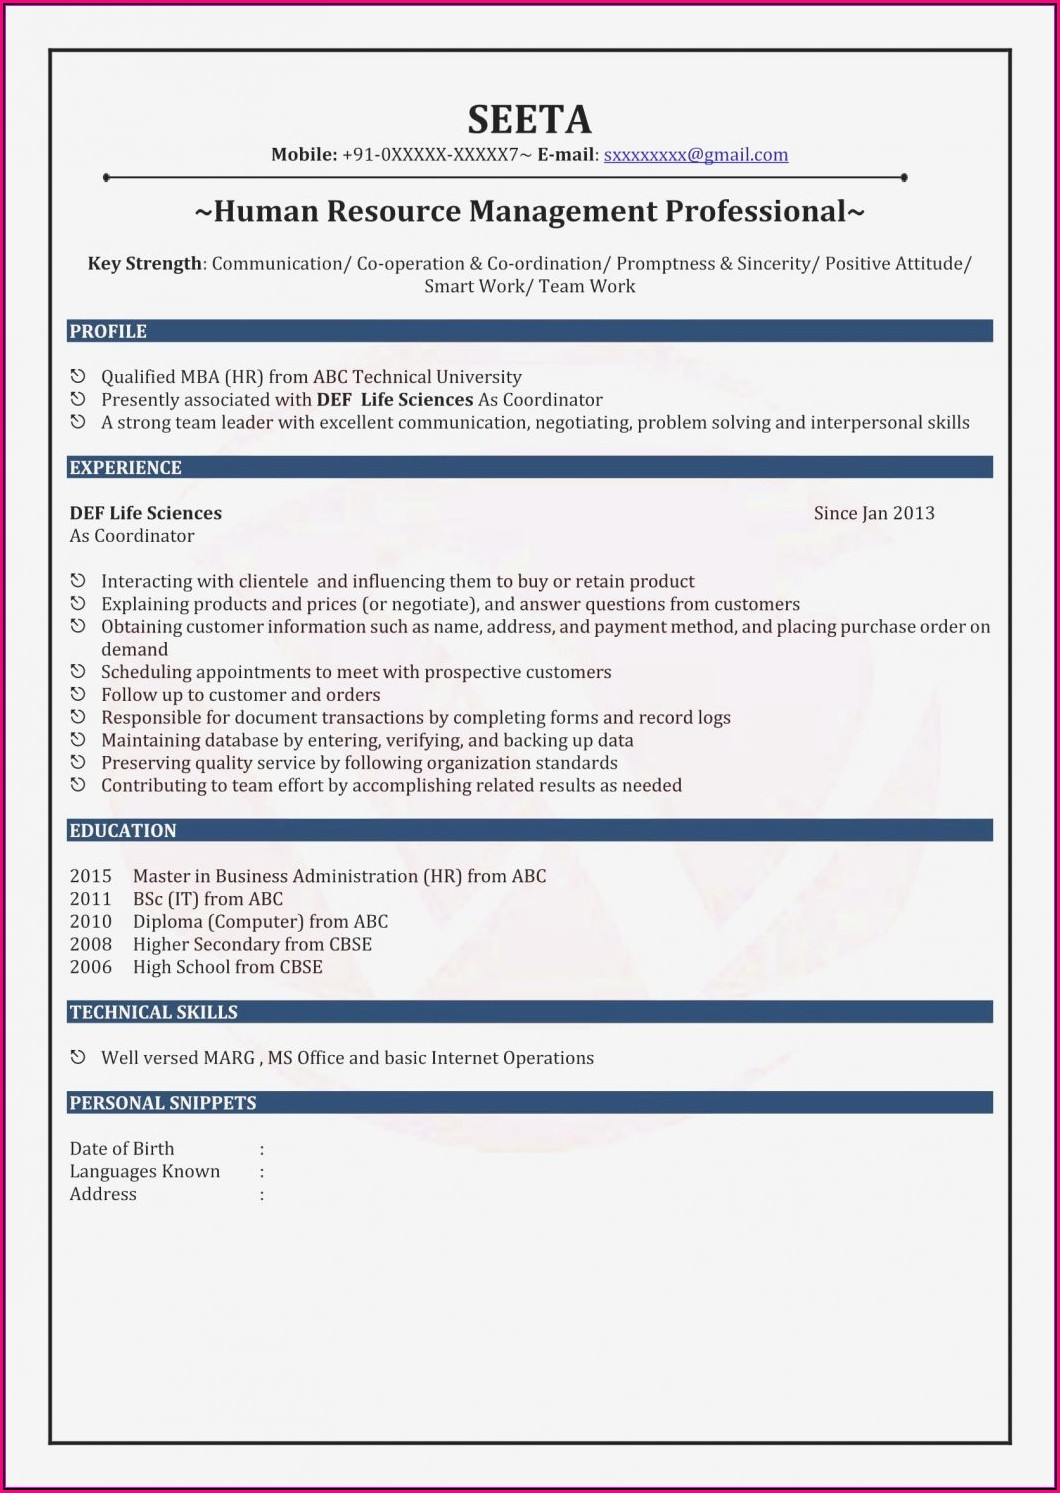 New Resume Format For Mba Freshers